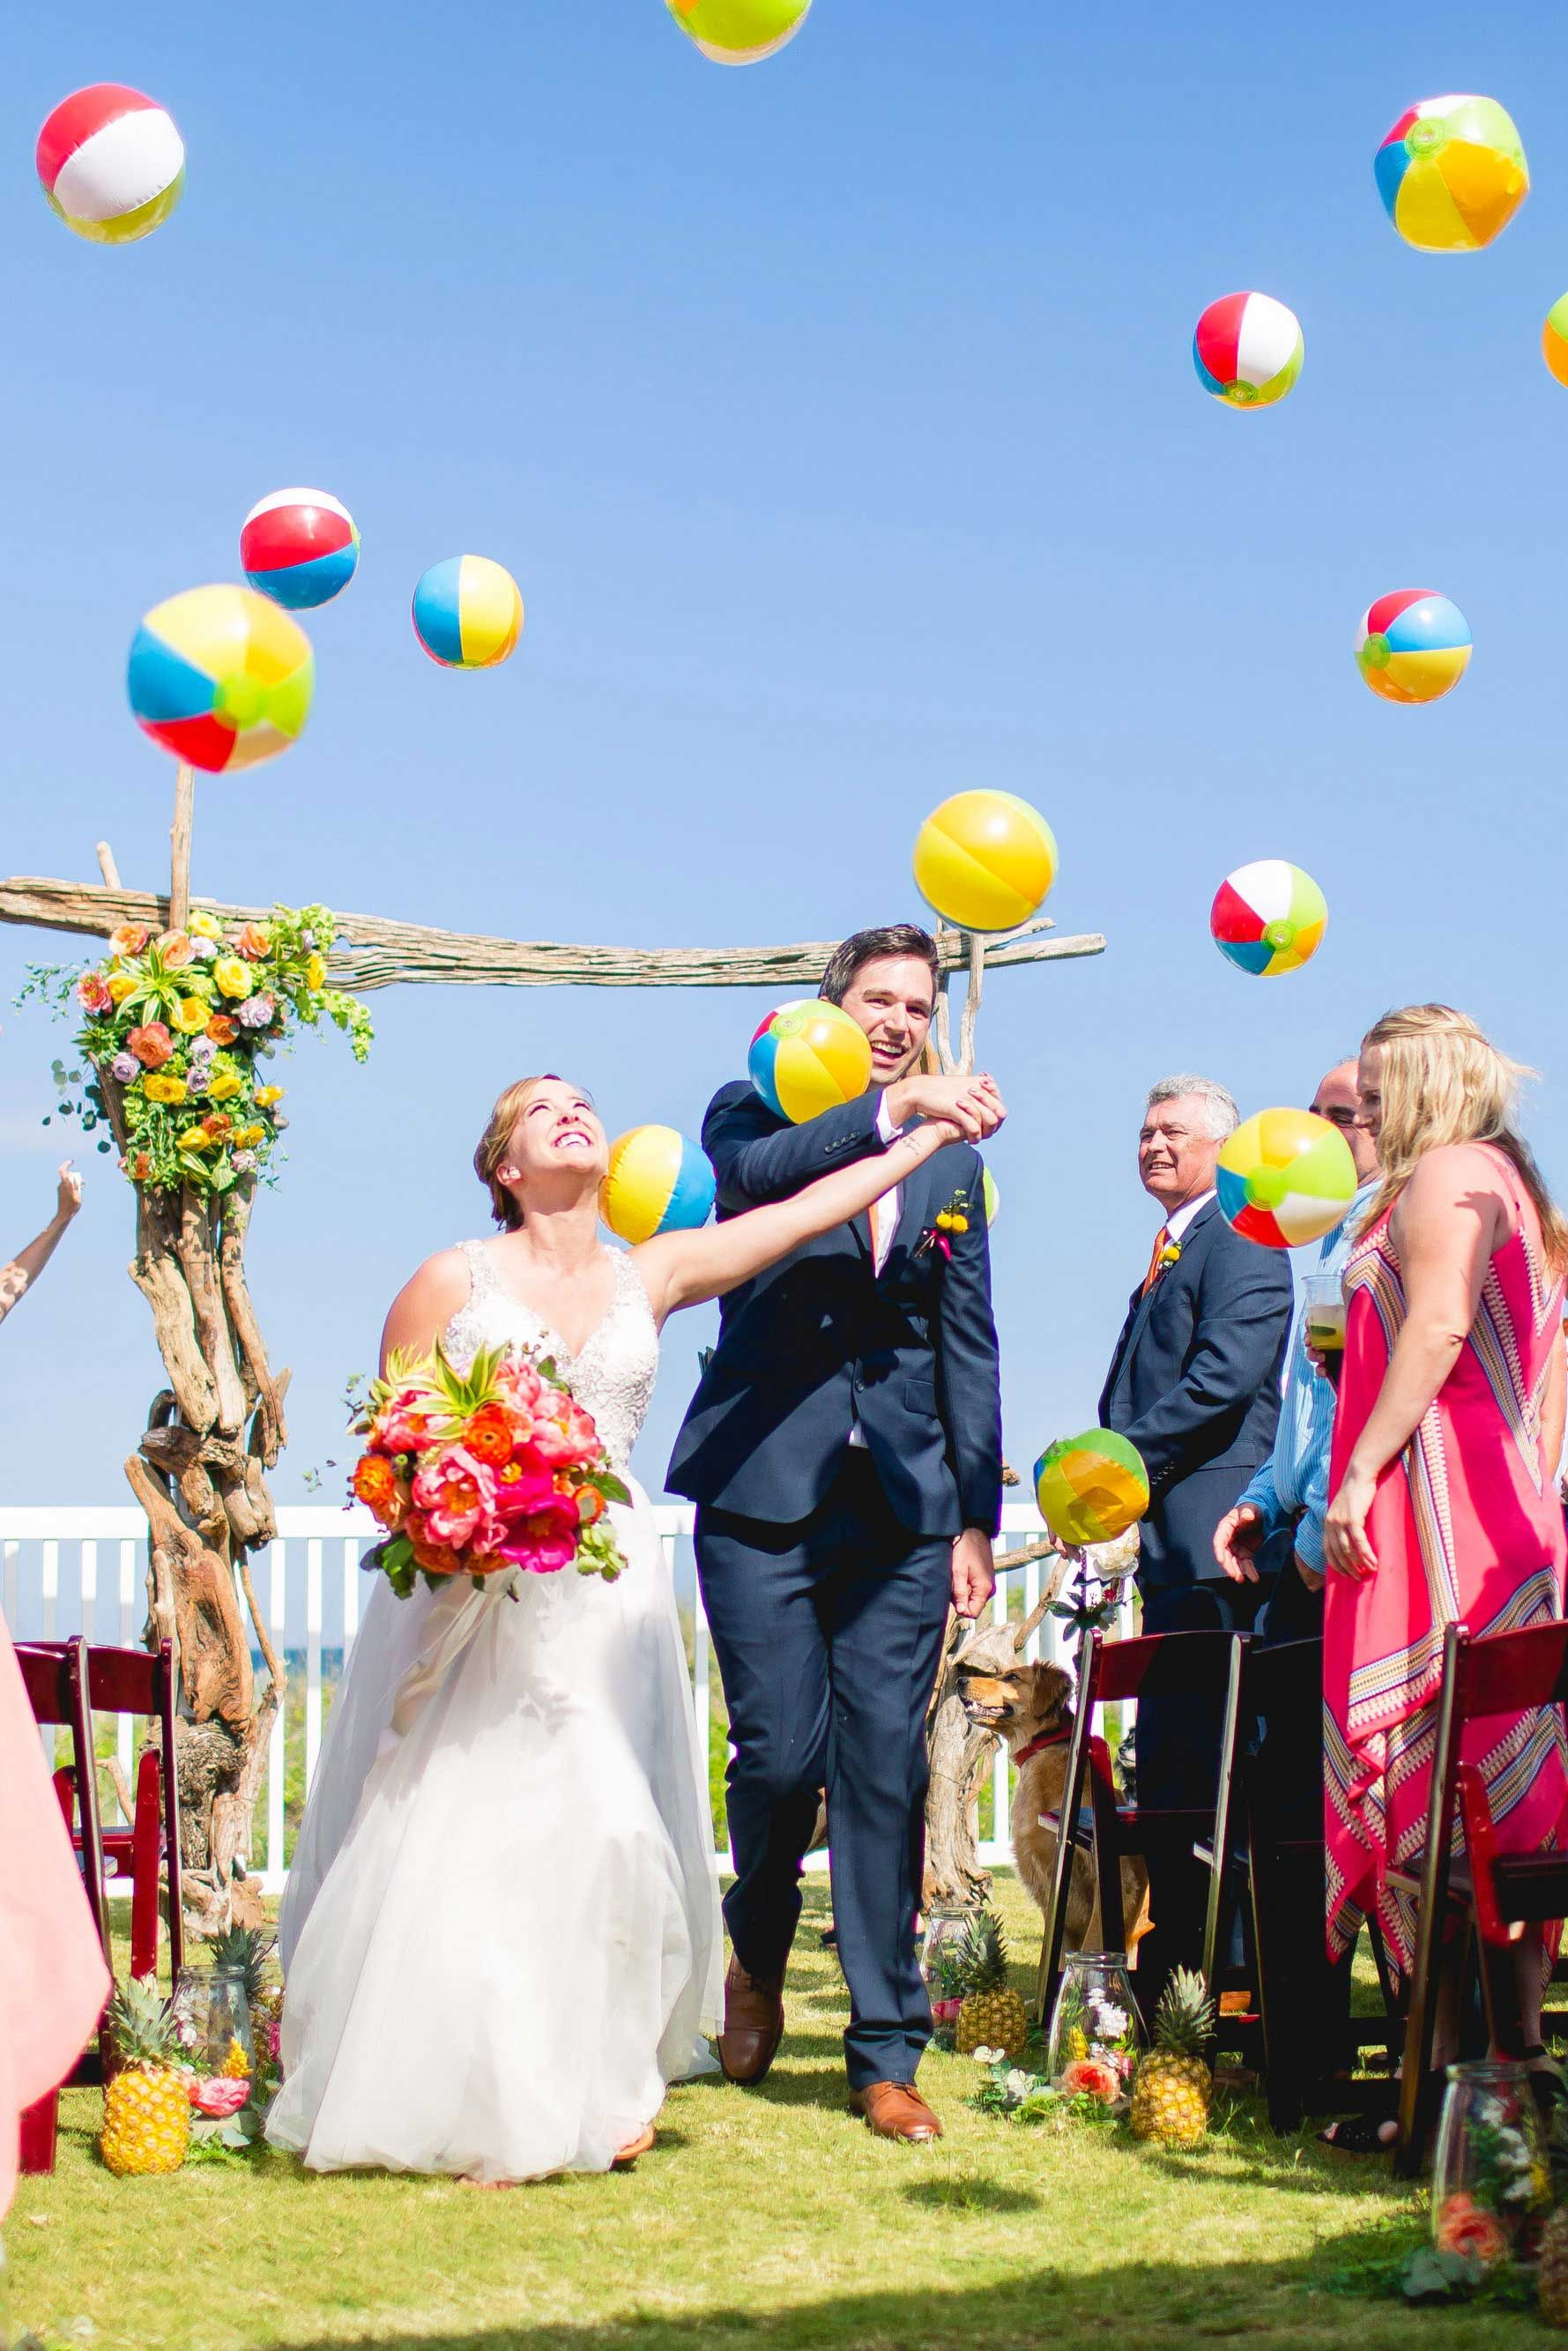 You Ve Got To See This Pineapple Obsessed Bride S Wedding Outer Banks Beach Wedding Obx Beach Coastal Wedding